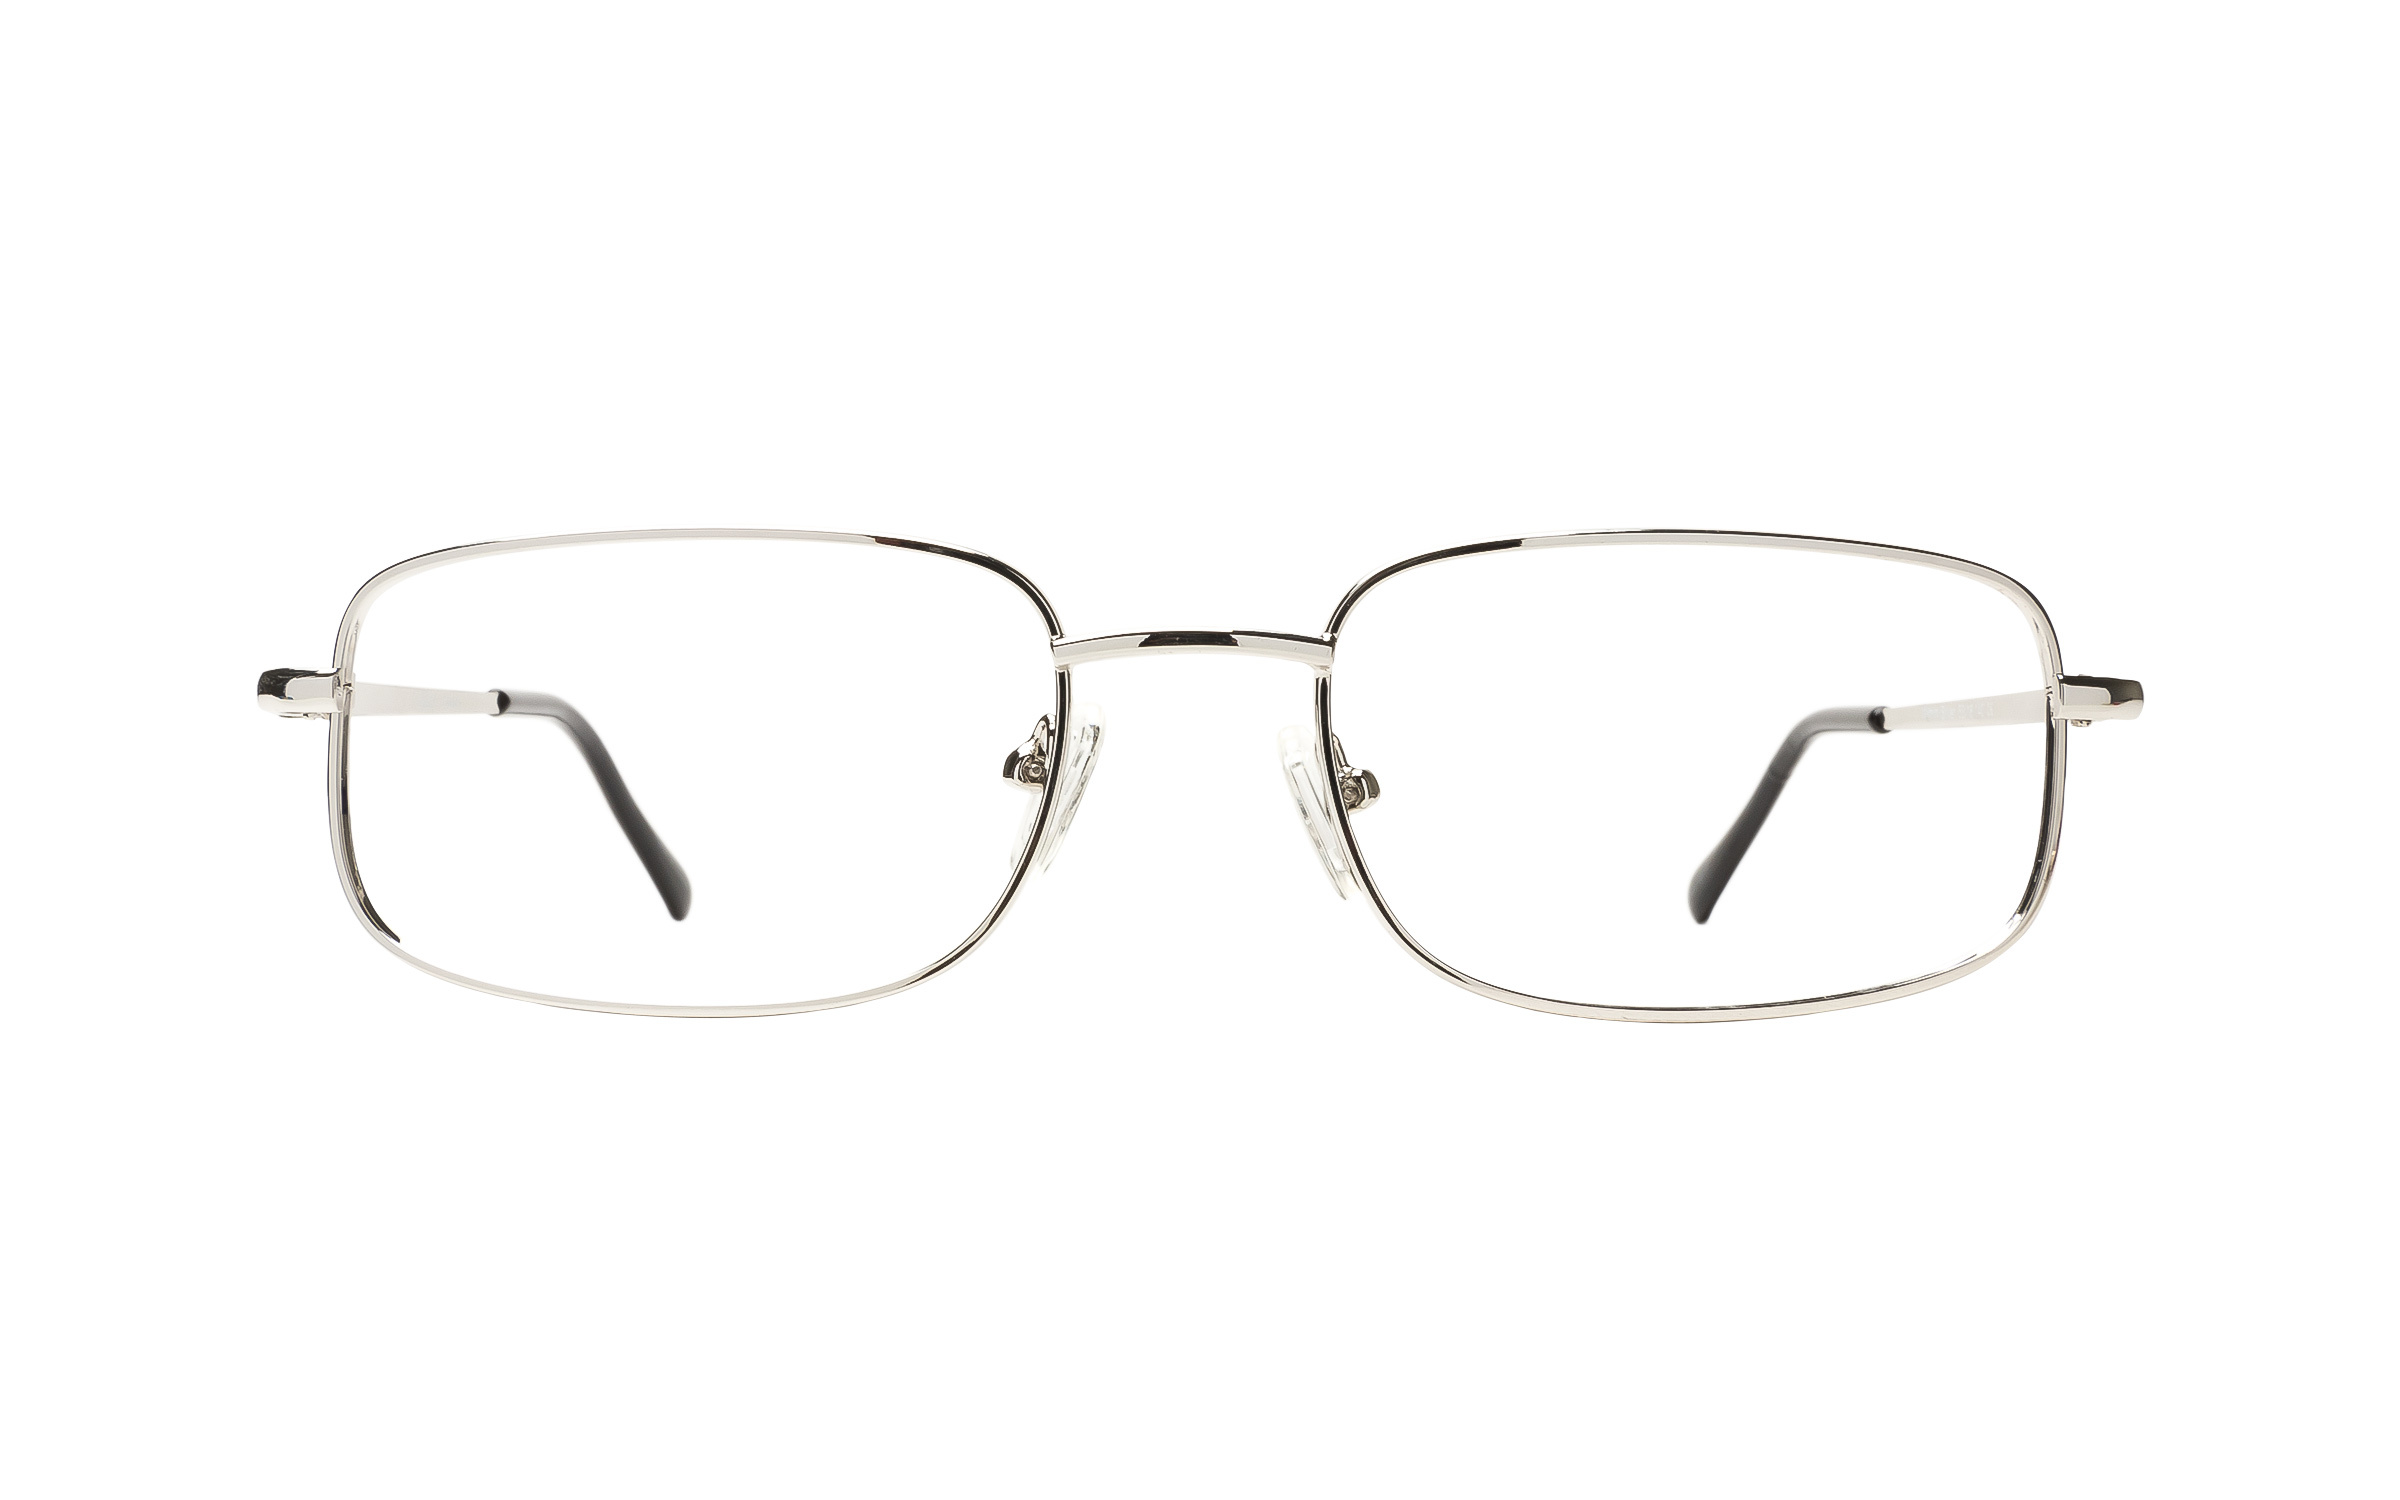 Clearly Basics Wimin (53) Eyeglasses and Frame in Silver | Plastic - Online Coastal